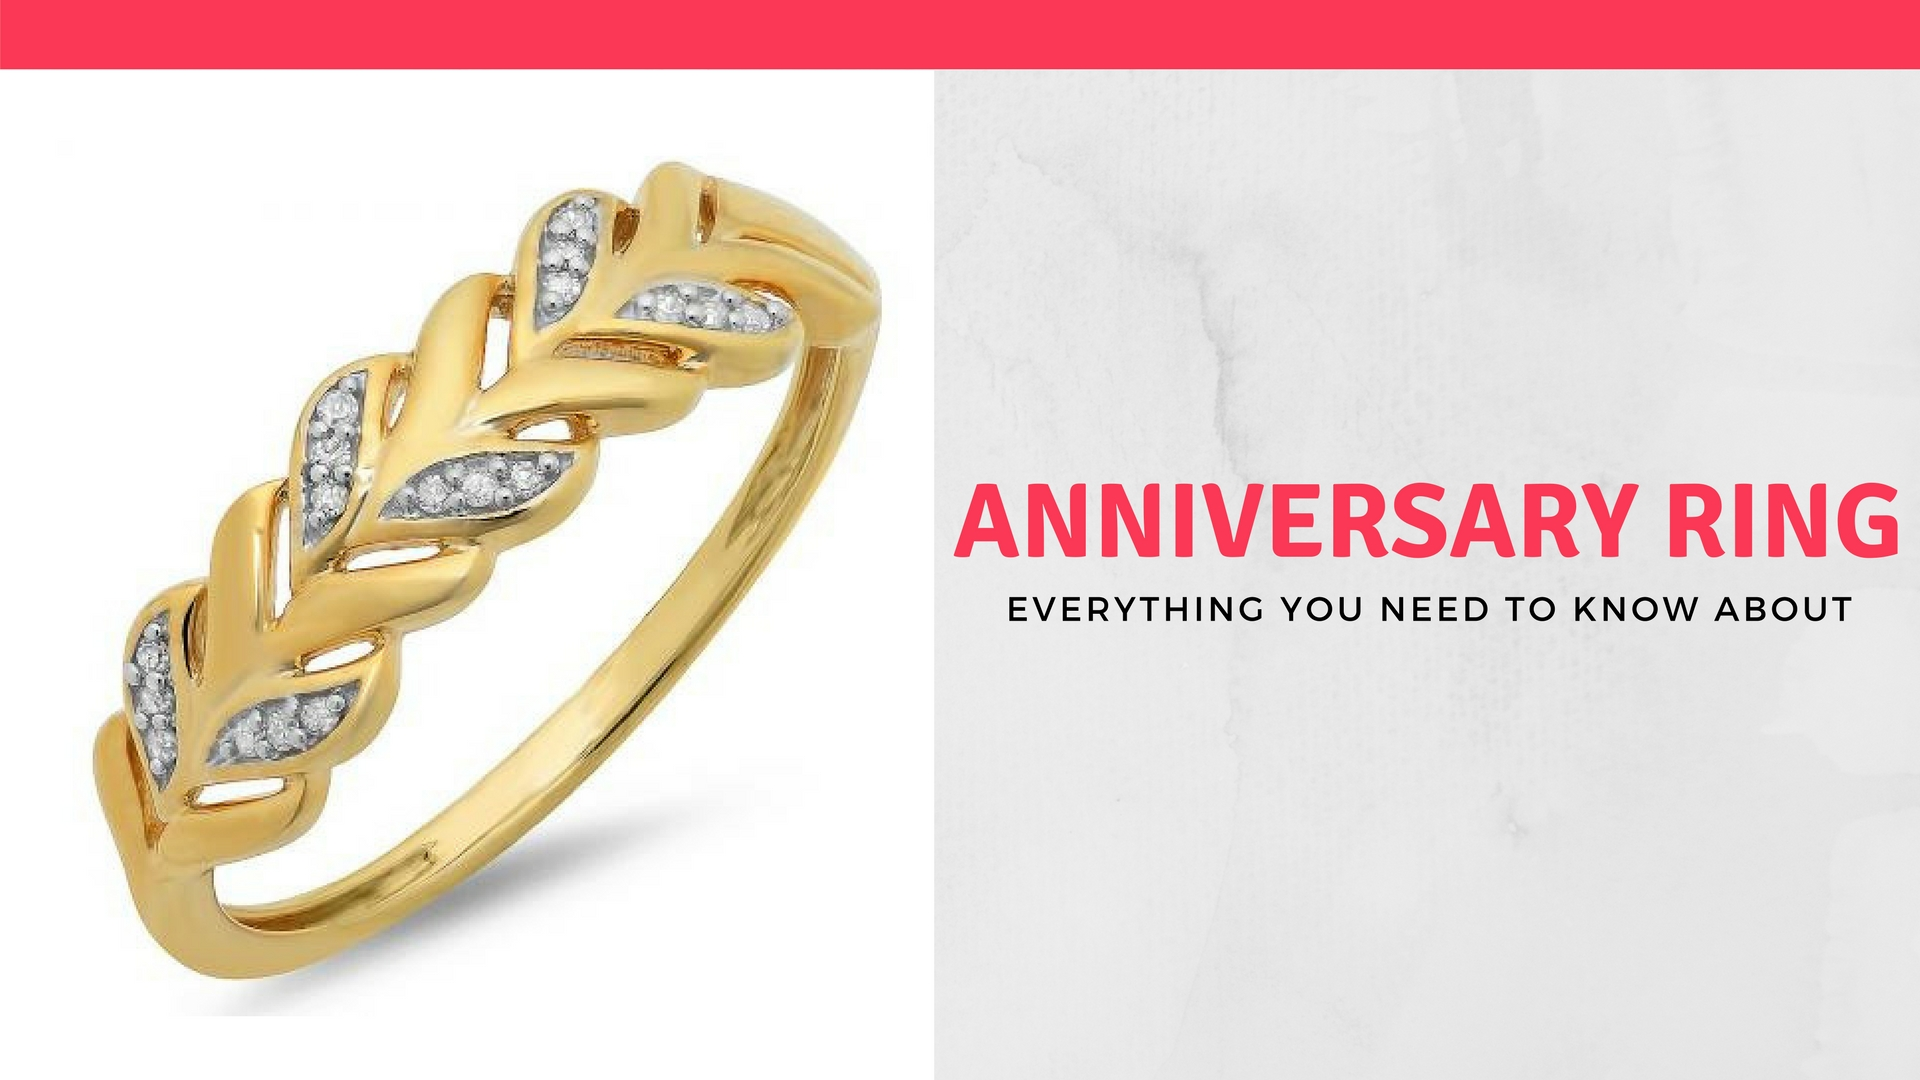 Everything You Need To Know About Anniversary Ring - DazzlingRock